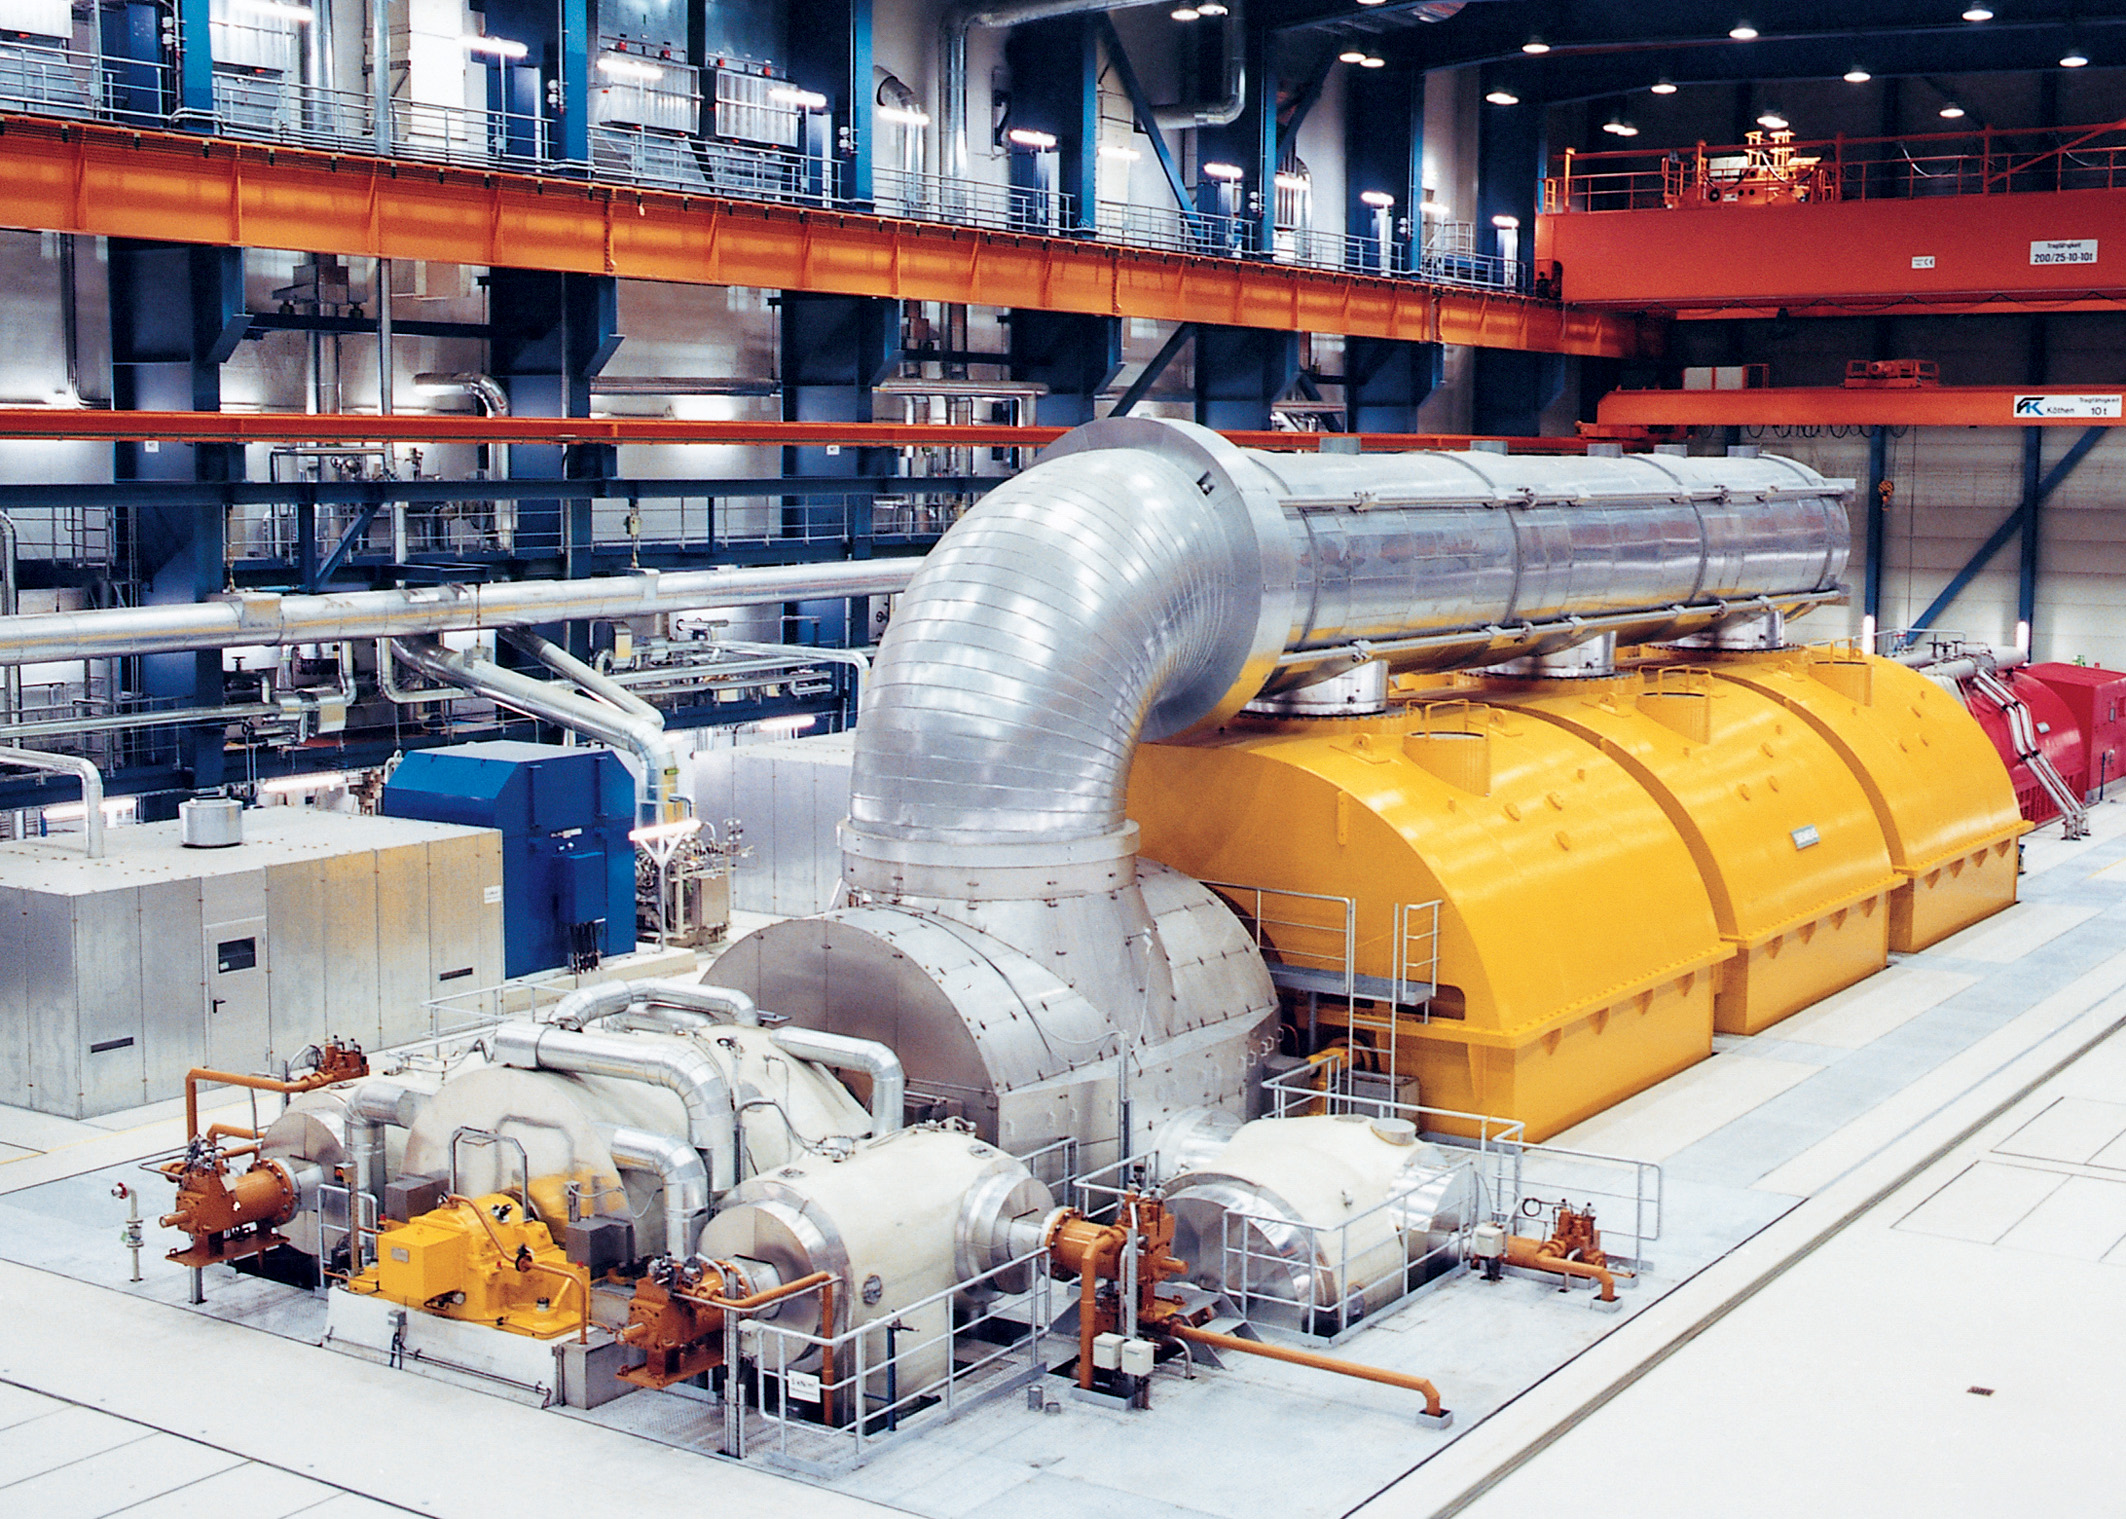 File:Turbogenerator01.jpg - Wikipedia, the free encyclopedia